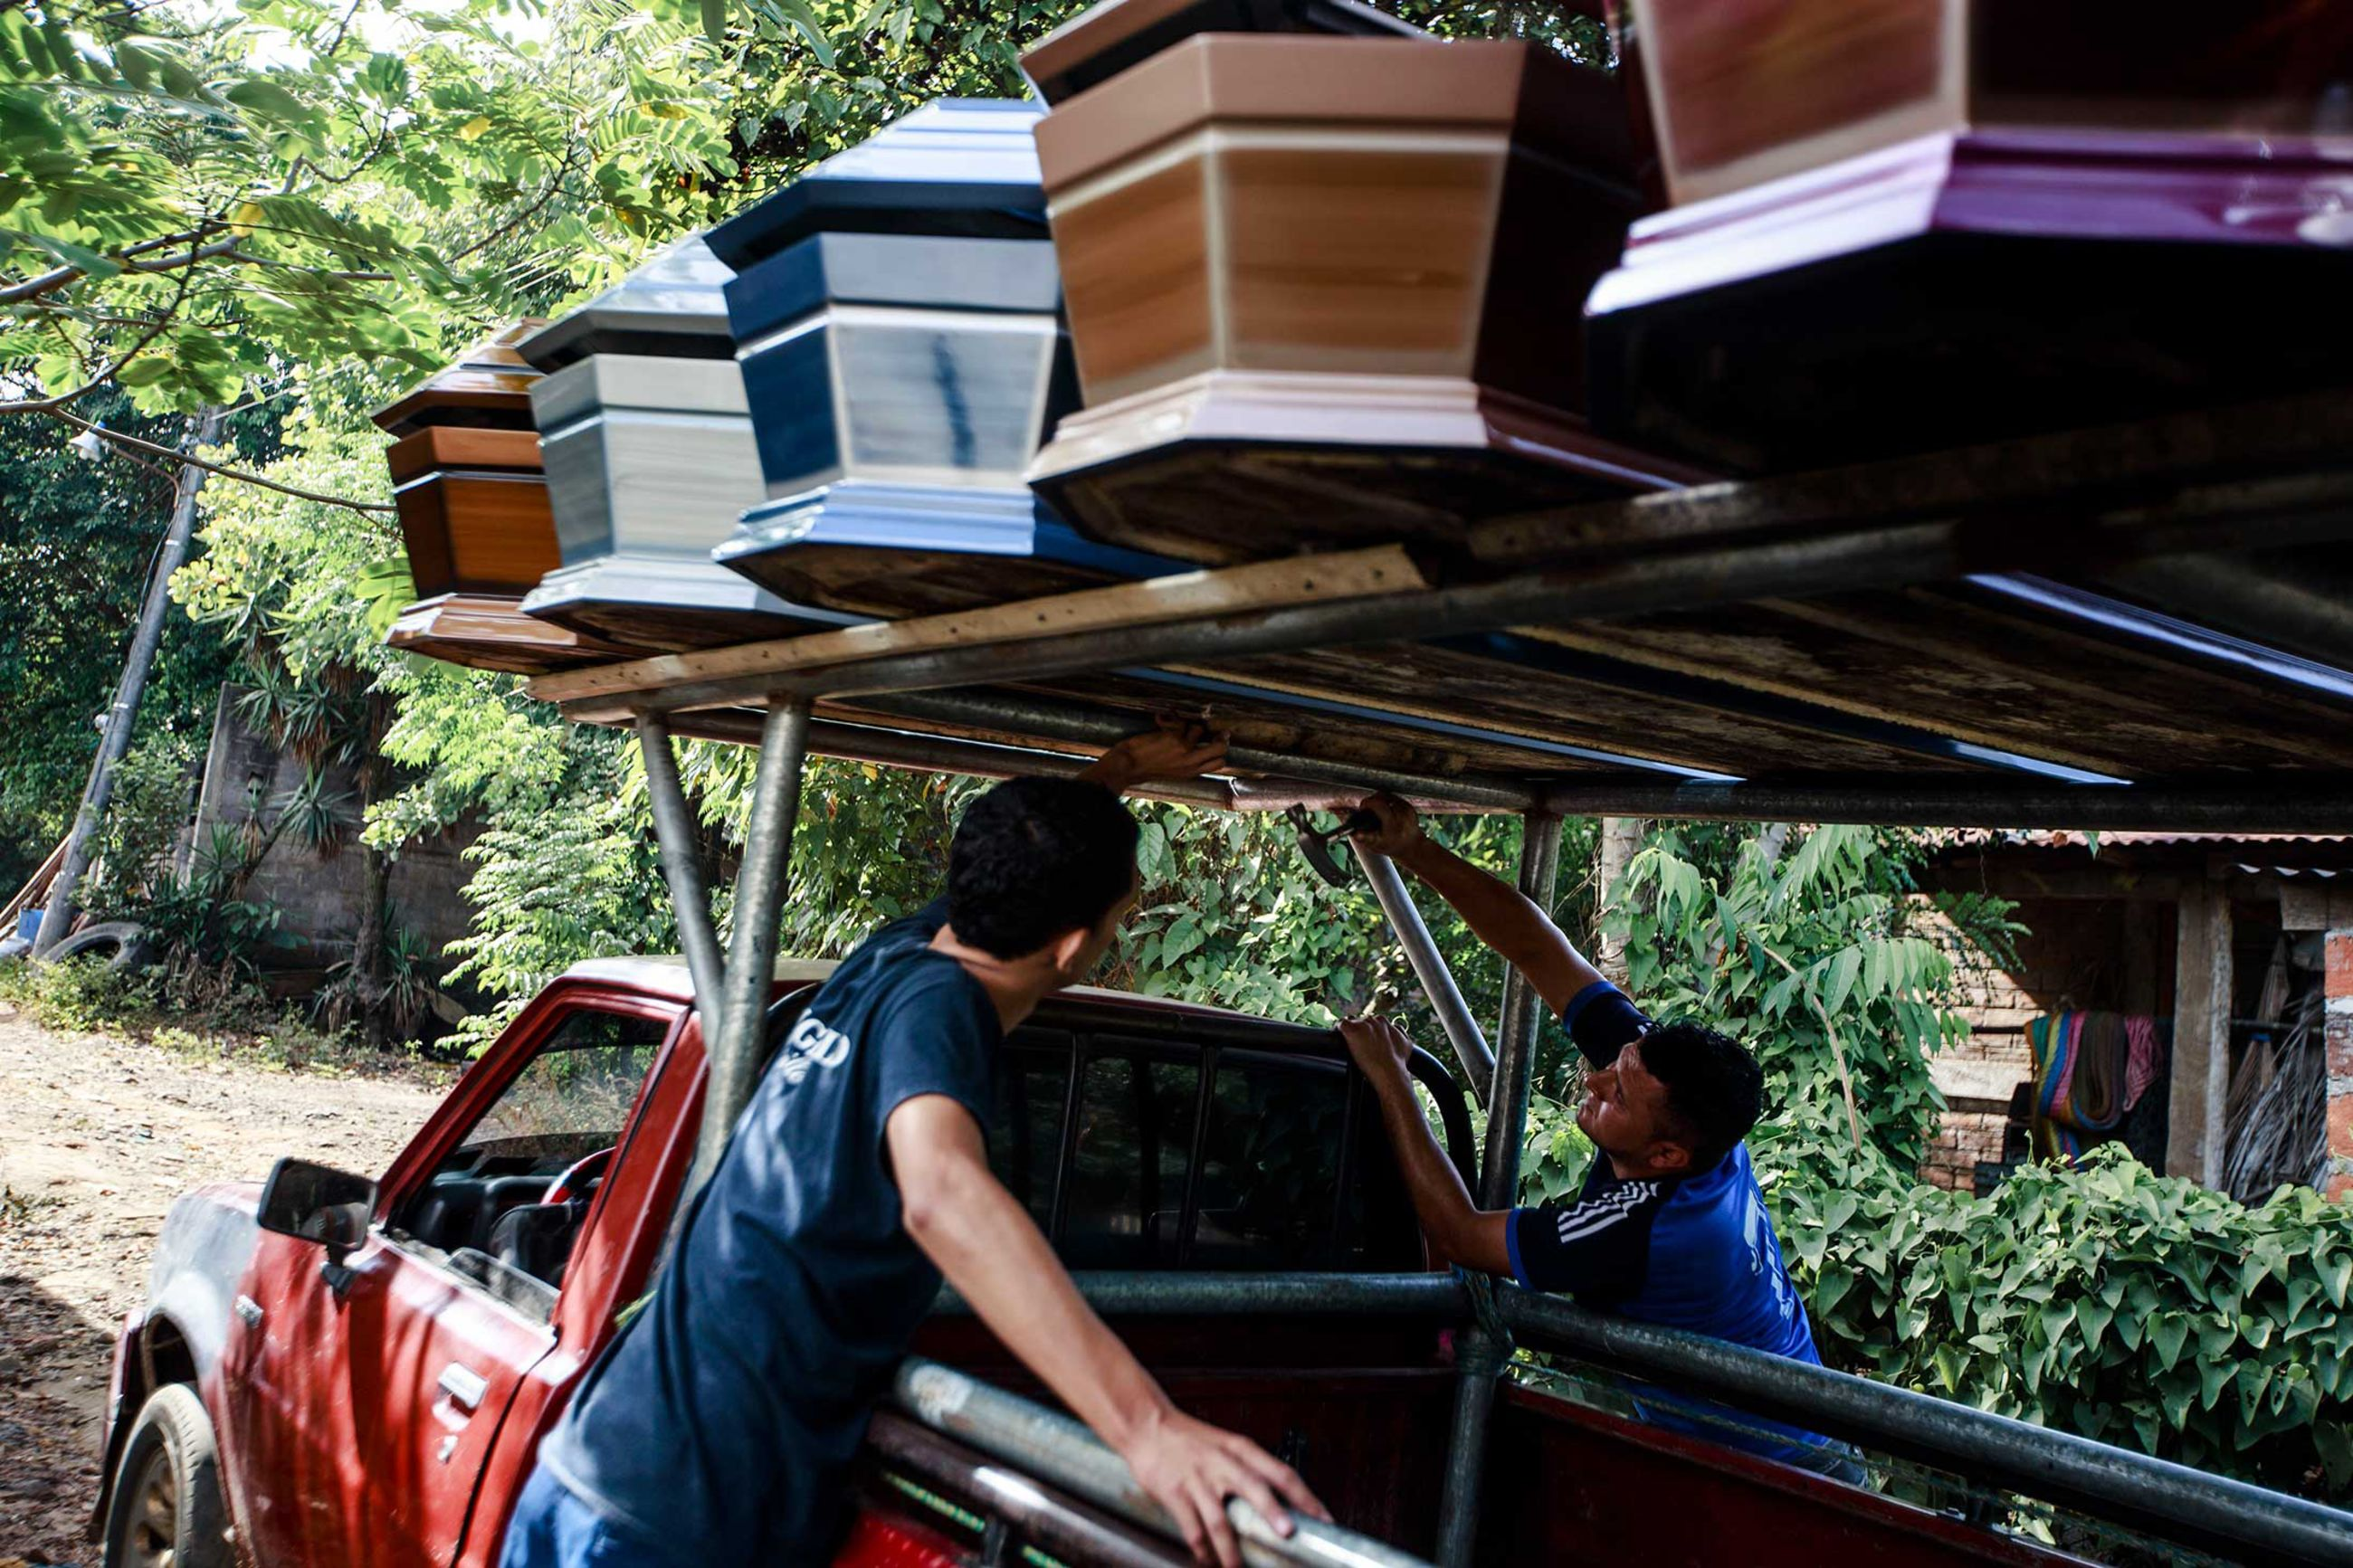 relates to The Coffin Business Is Booming in Central America Due to Gang Violence